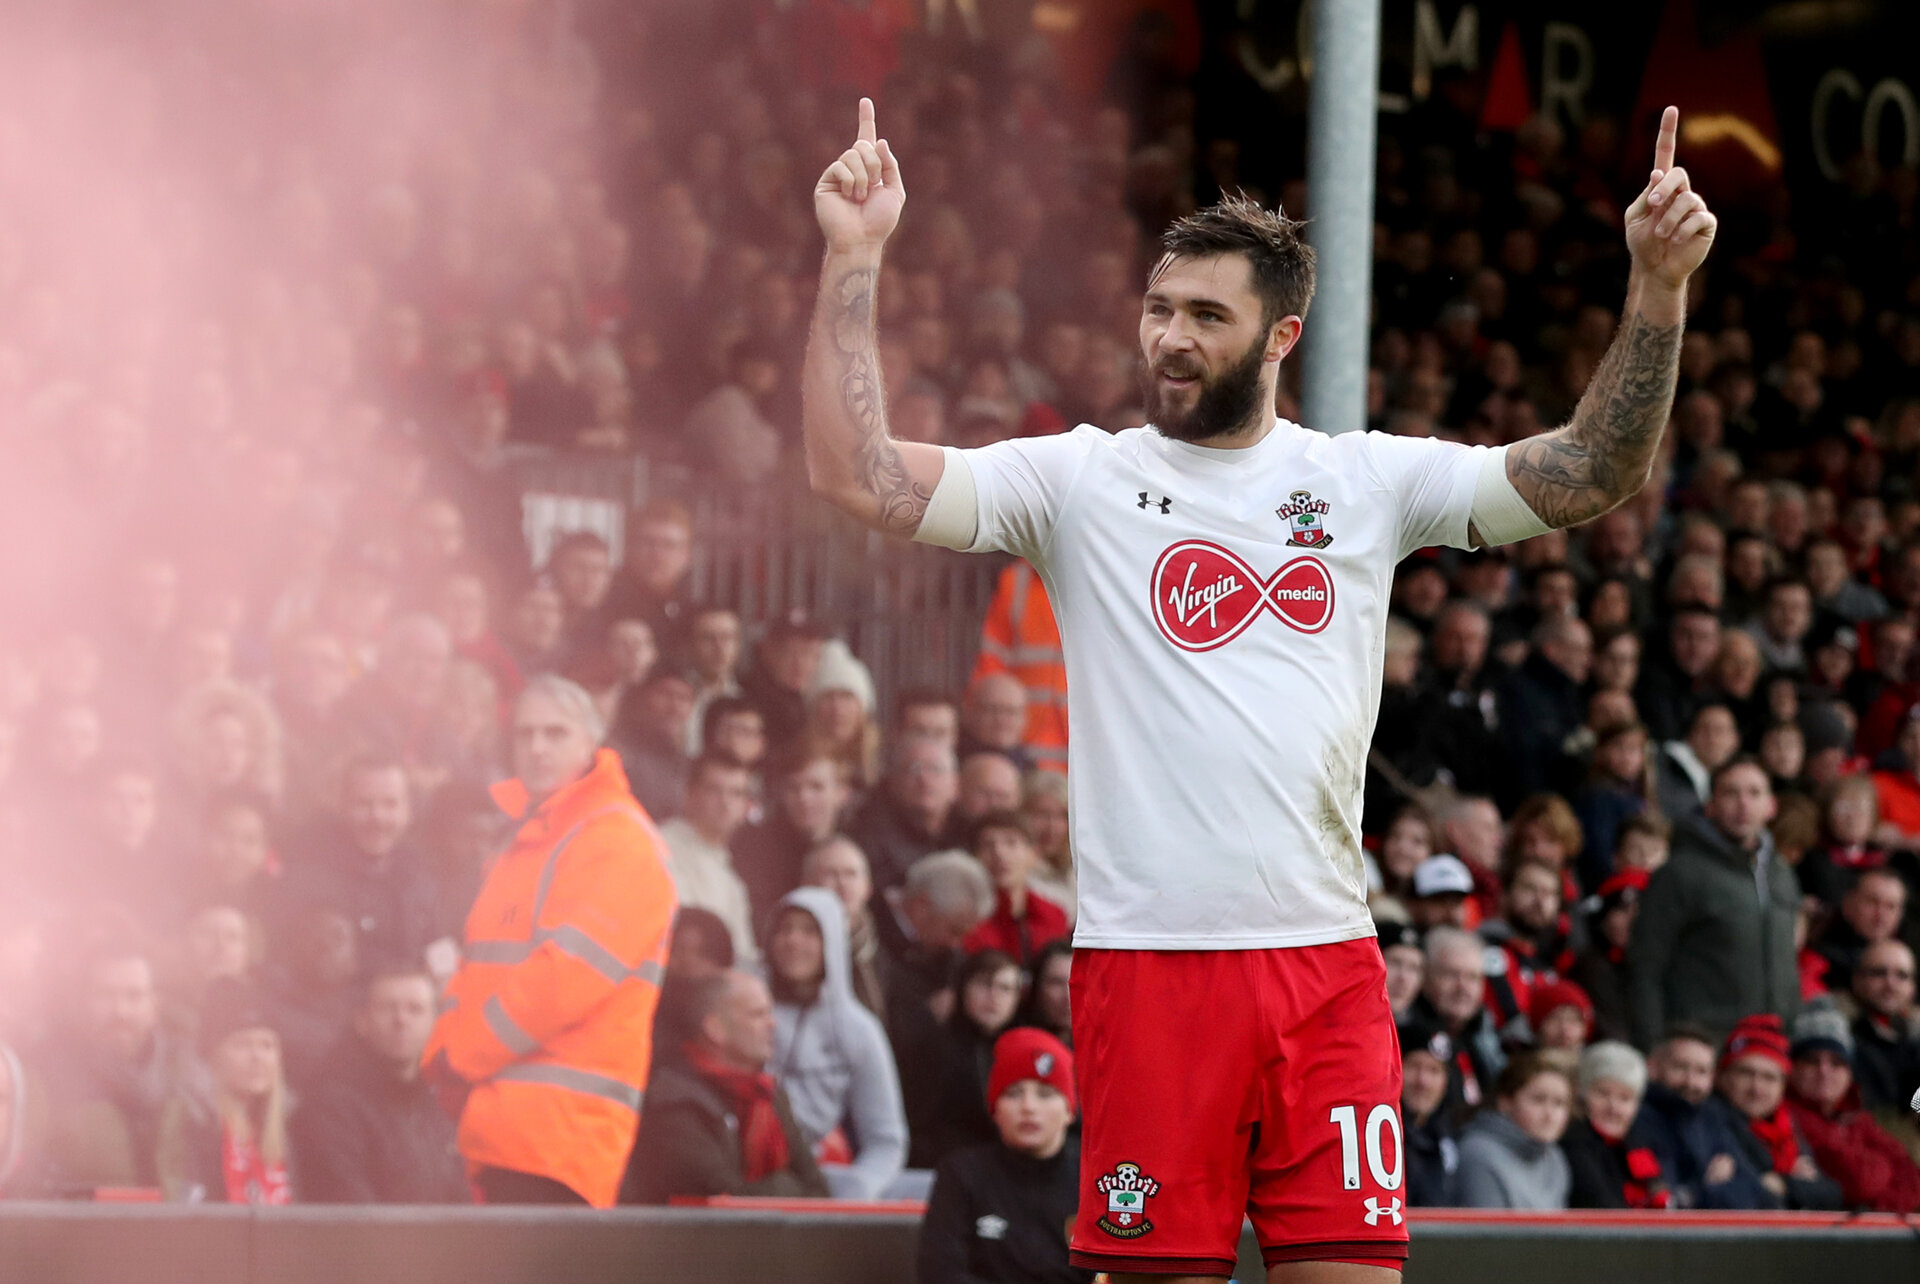 BOURNEMOUTH, ENGLAND - DECEMBER 03: Southampton's Charlie Austin celebrates after equalising during the Premier League match between AFC Bournemouth and Southampton at the Vitality Stadium on December 3, 2017 in Bournemouth, England. (Photo by Matt Watson/Southampton FC via Getty Images)